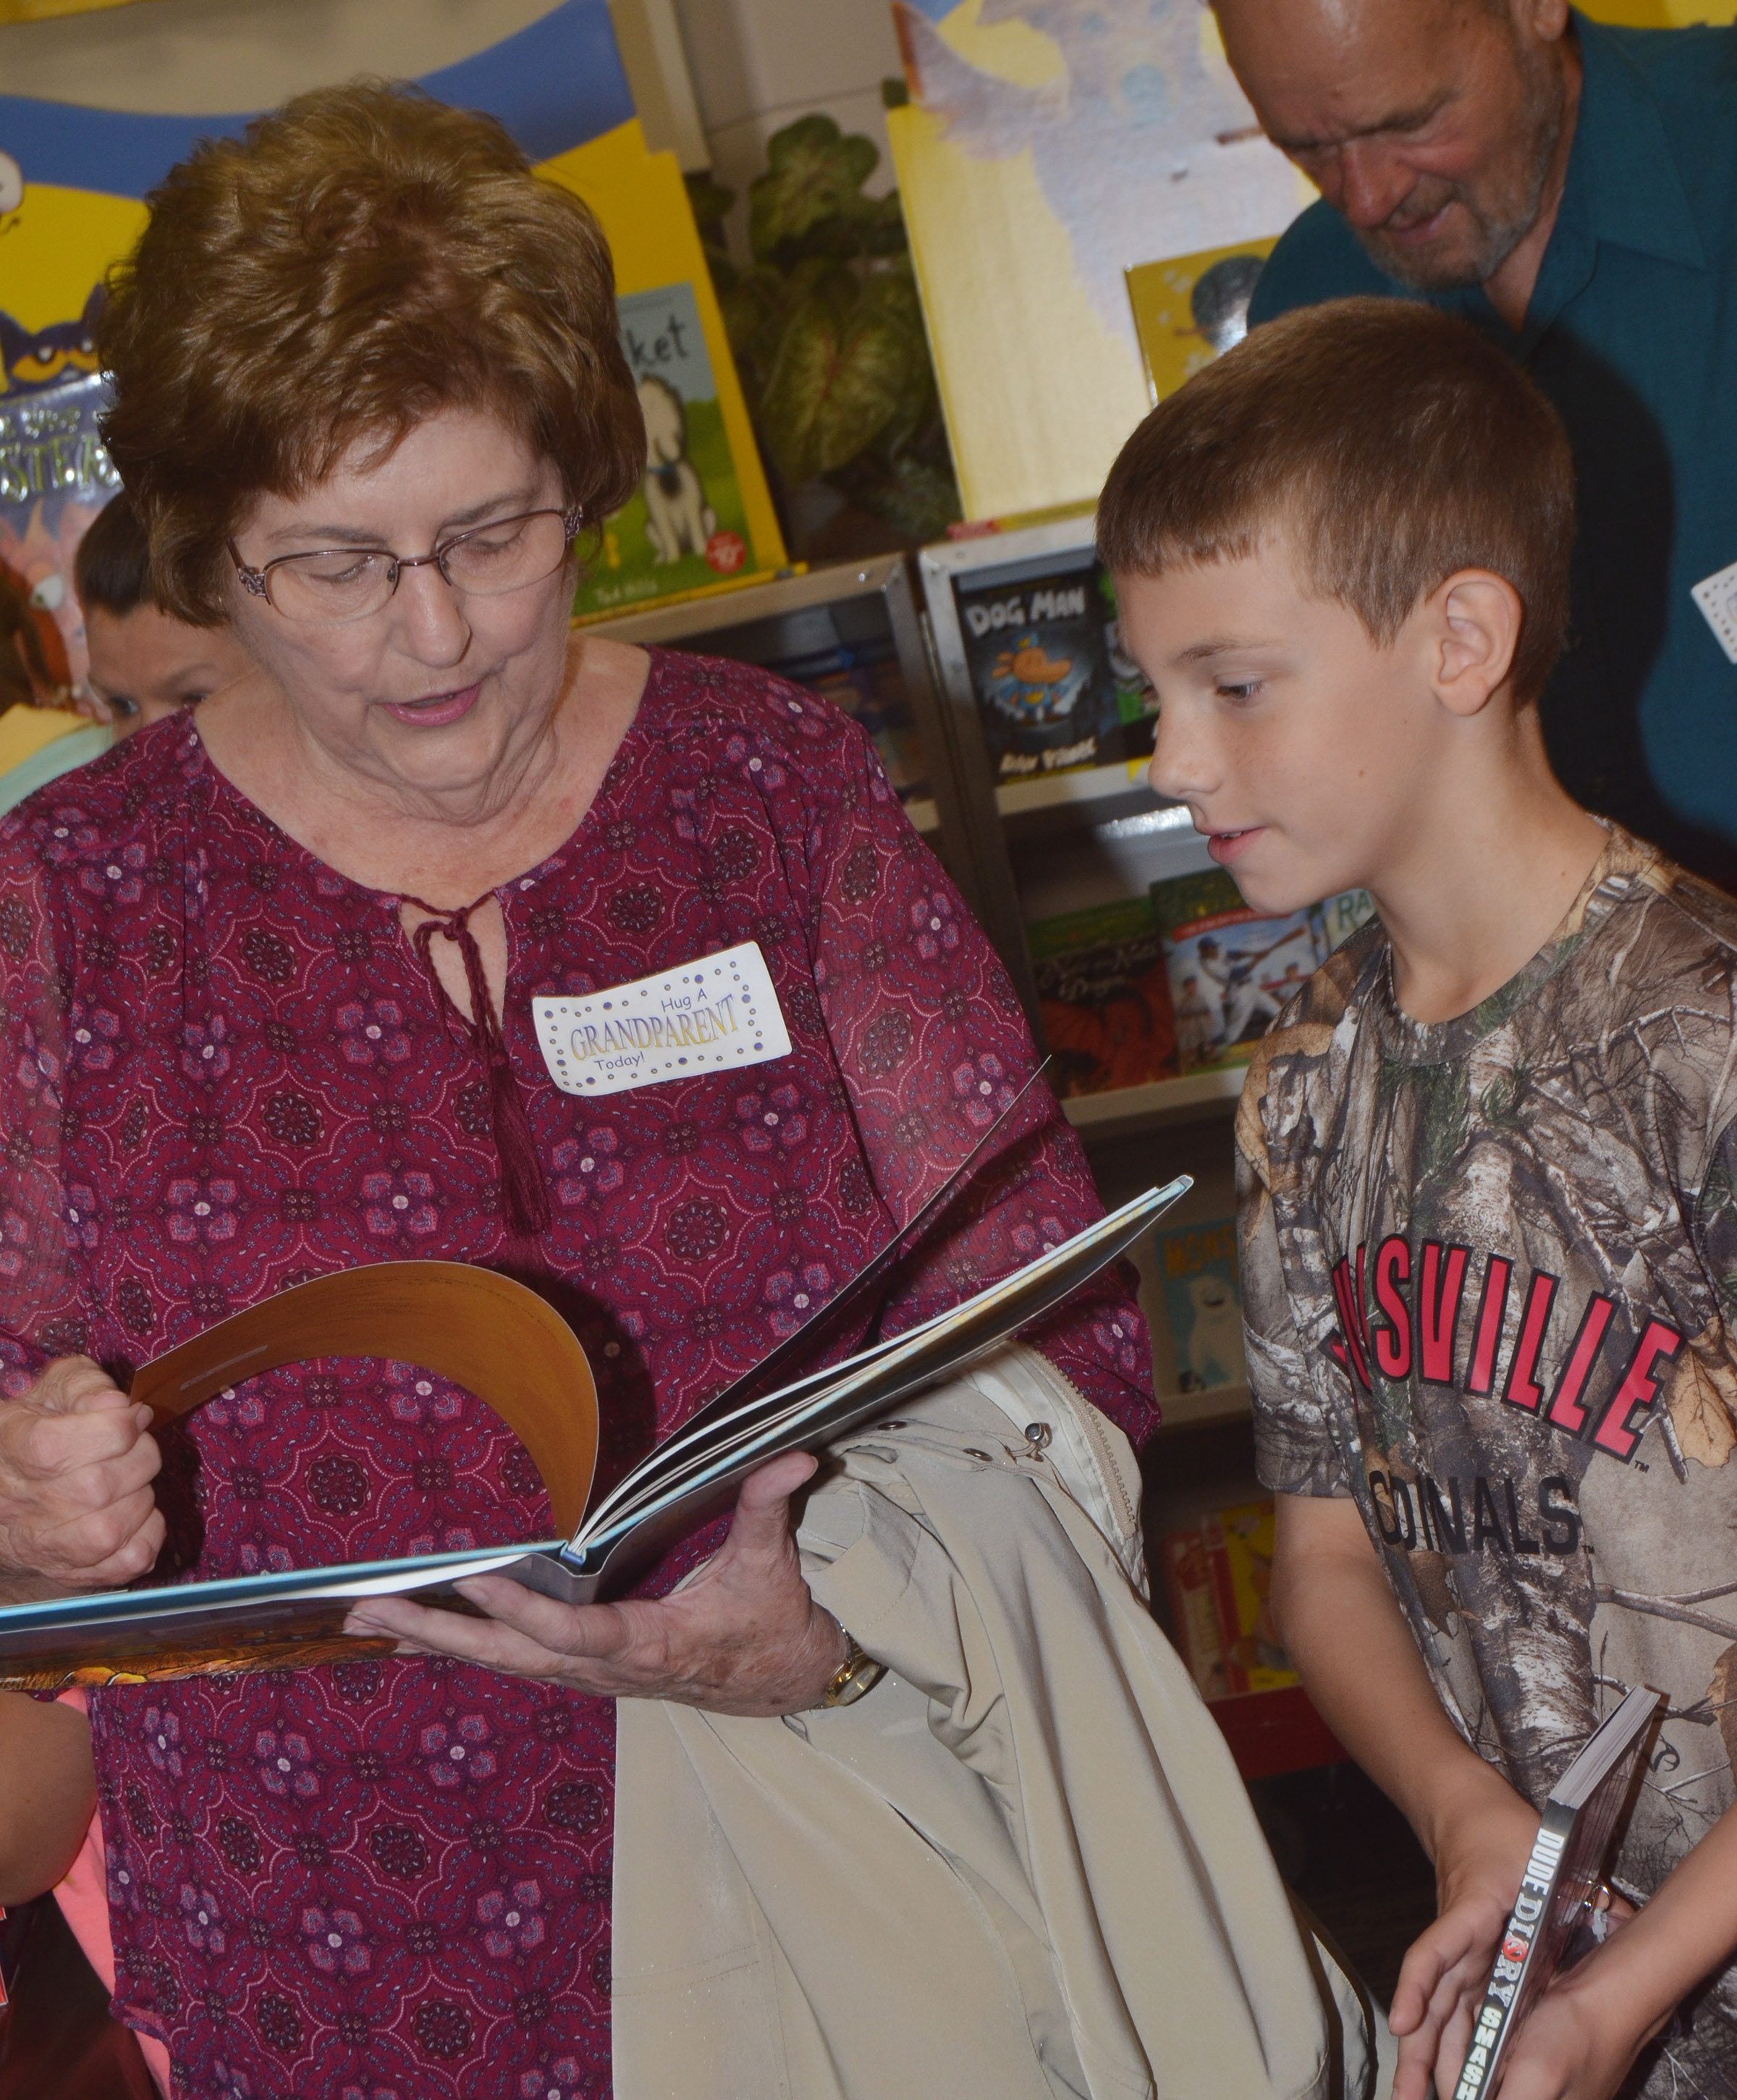 CES third-grader Aidan Wilson looks at books with his grandmother.